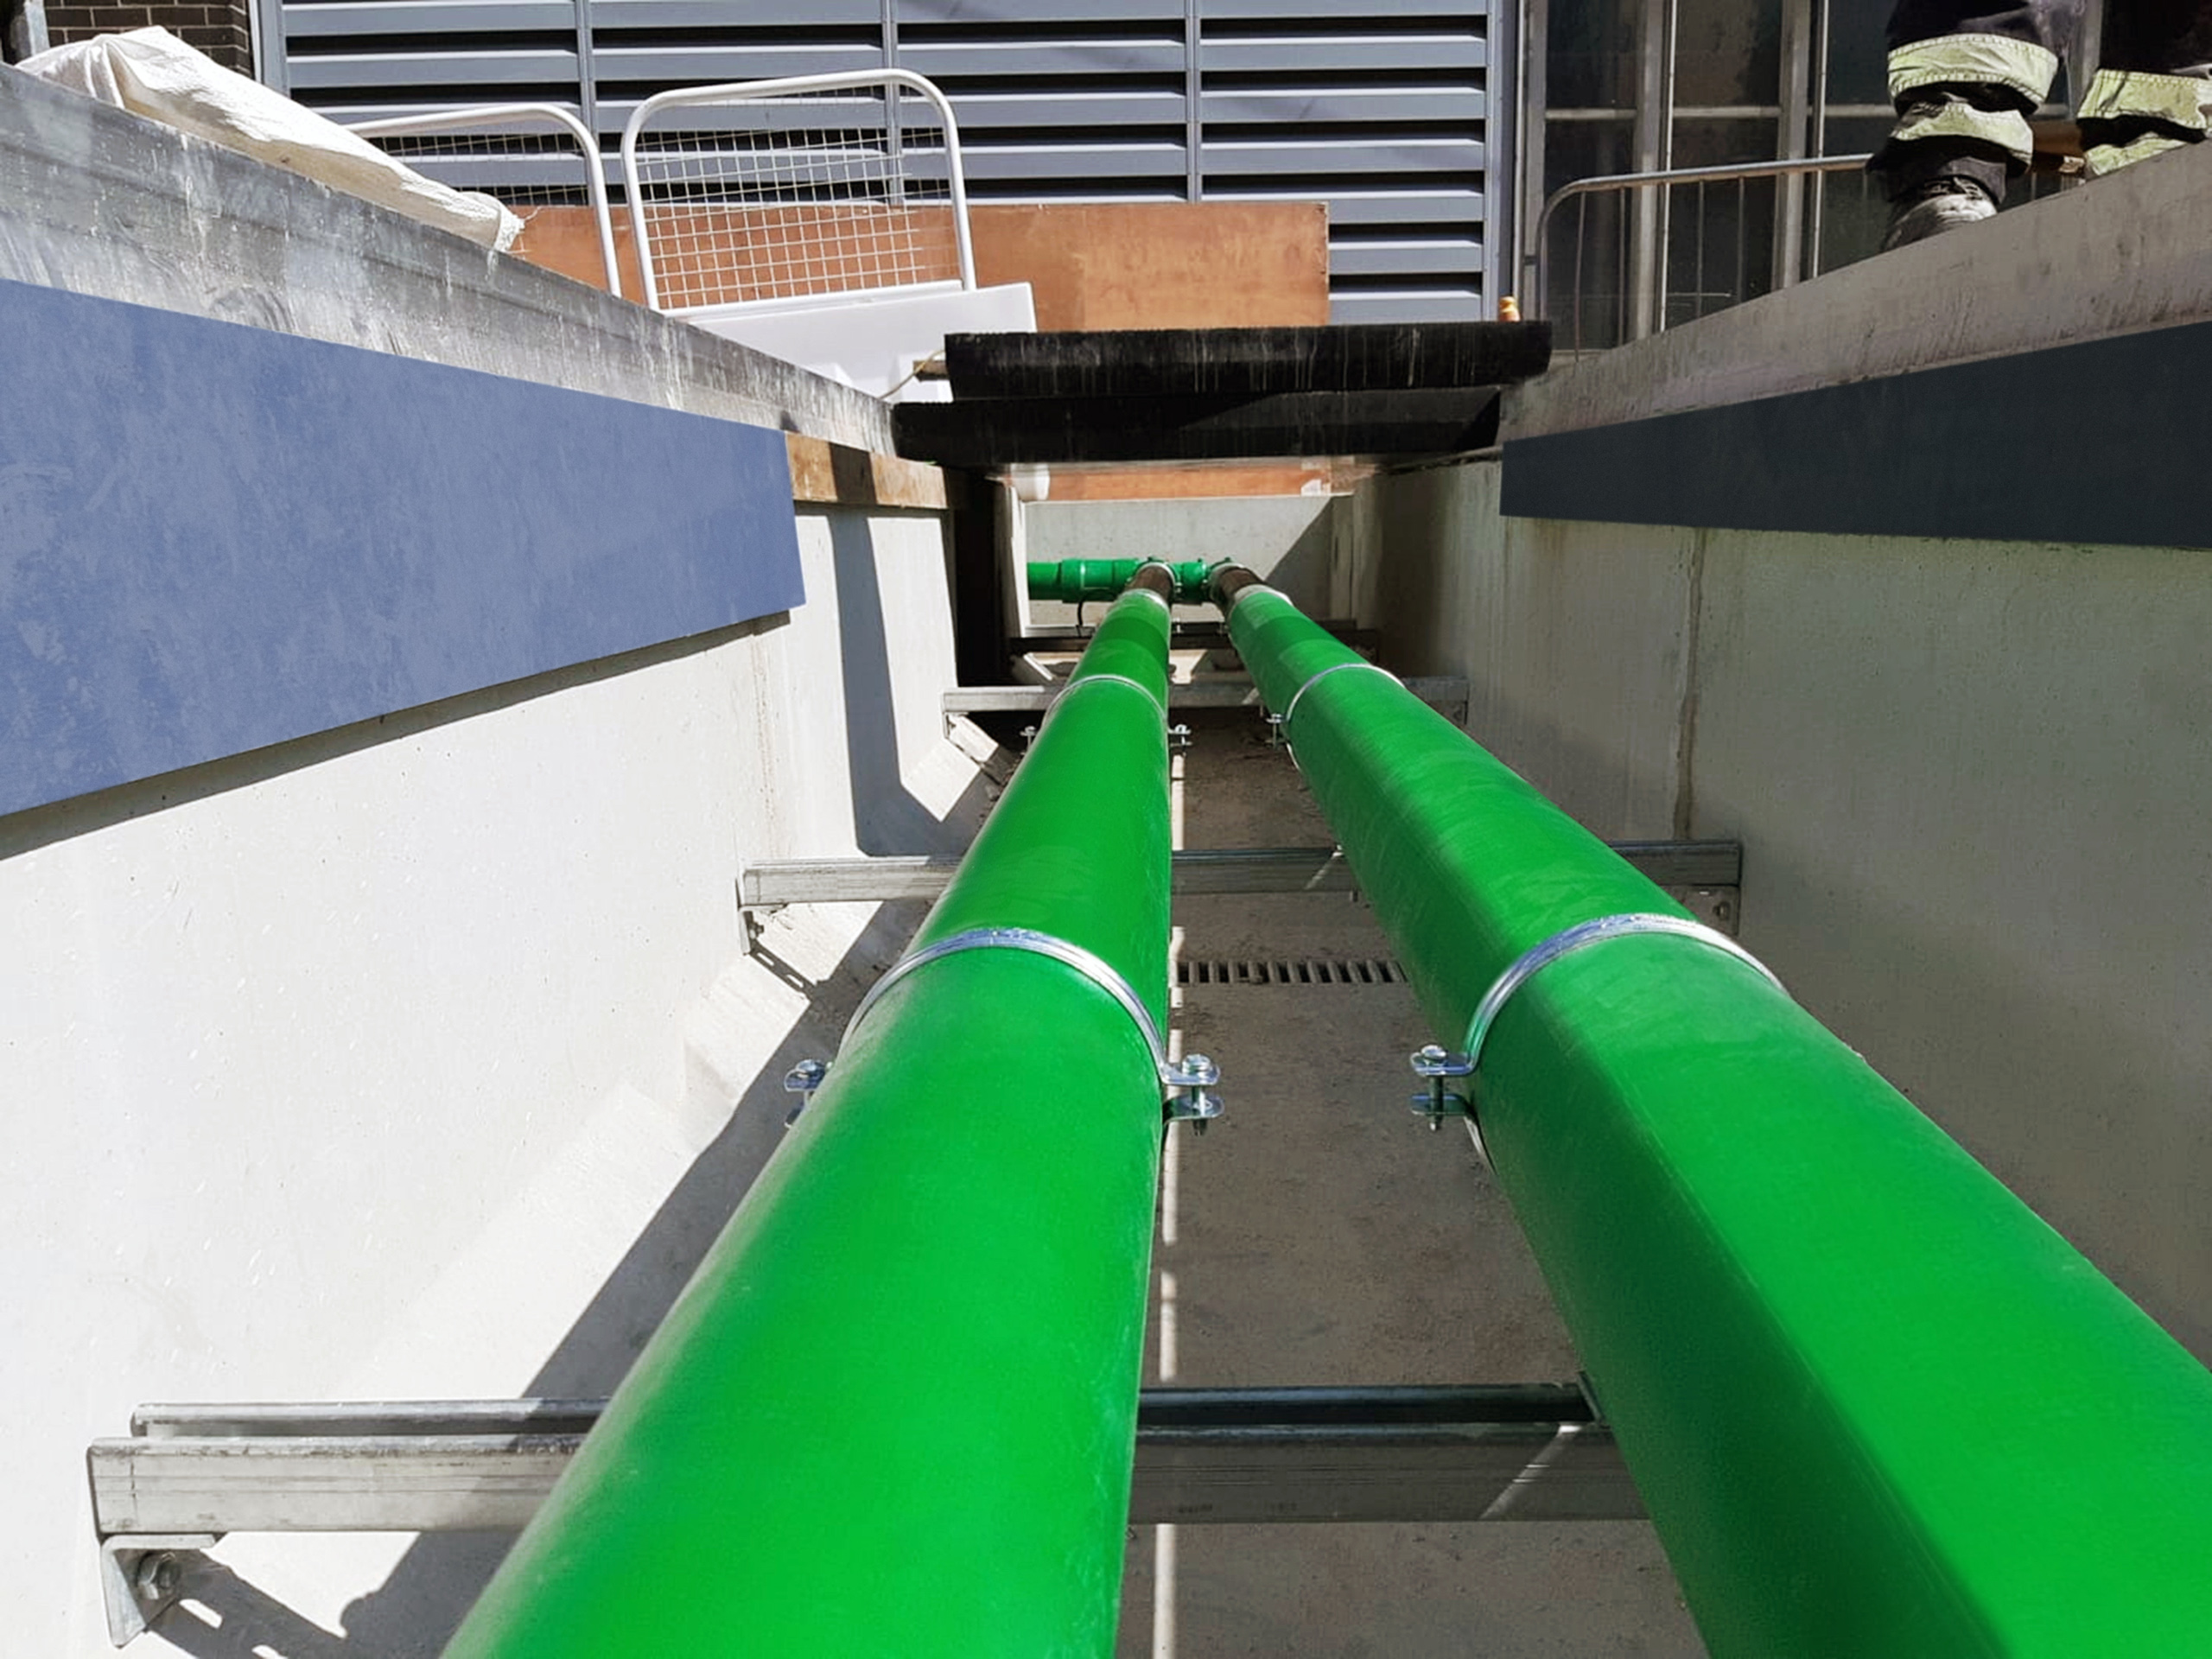 KPS' plastic piping provide a safe, easy-install fluid transfer solution